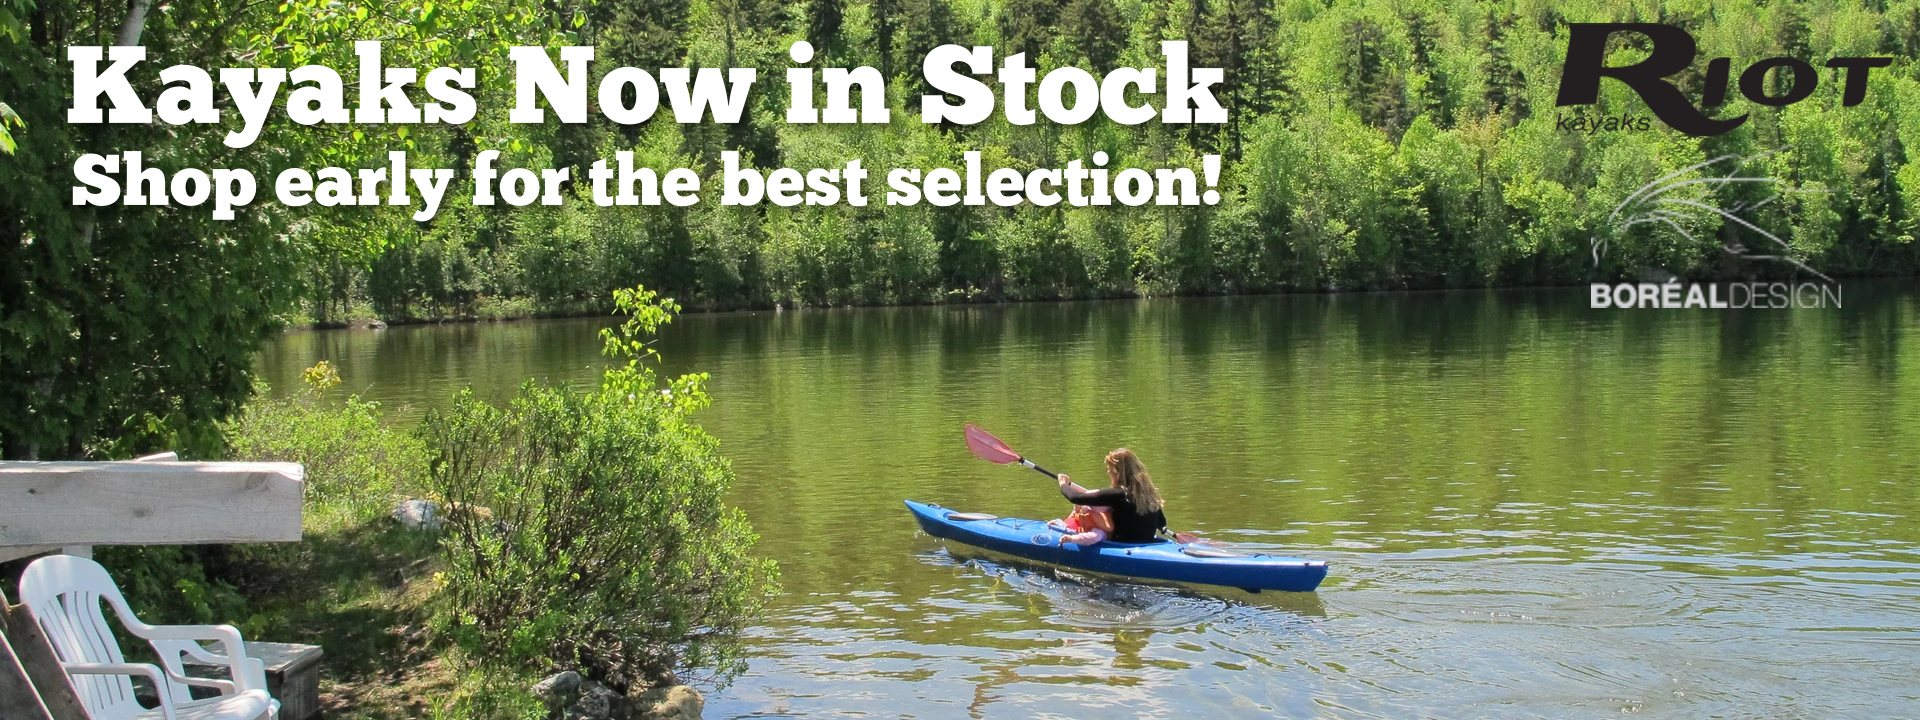 Kayaks are in Stock!